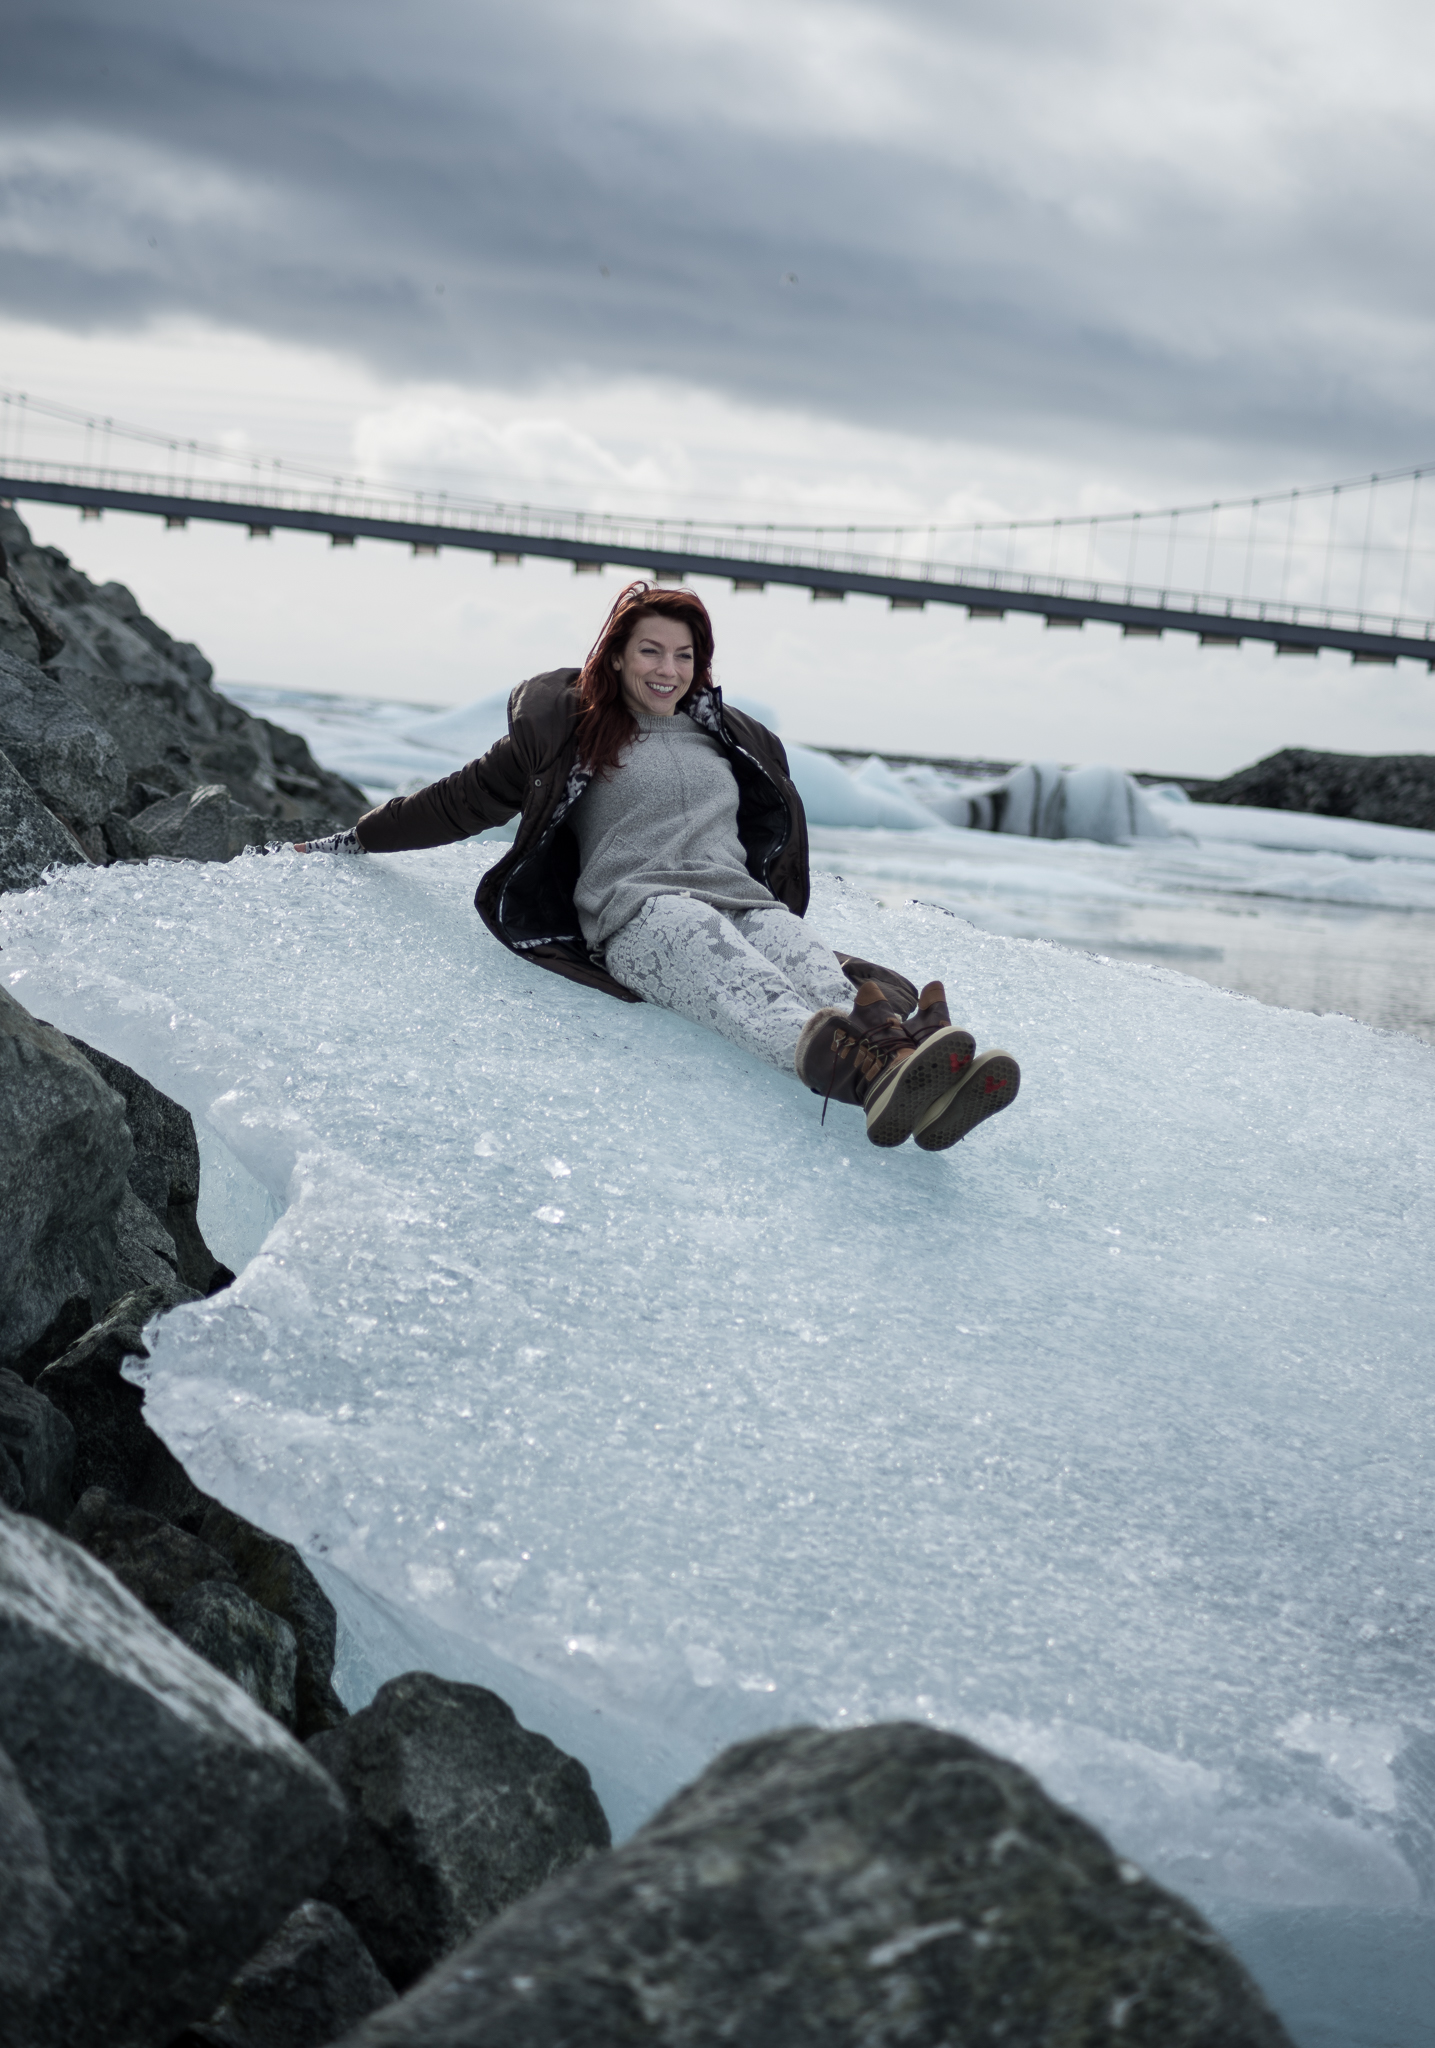 How long do you have to sit on icebergs to freeze your ass off? Depends on the pants. I was a bit more concerned about sliding into the water.